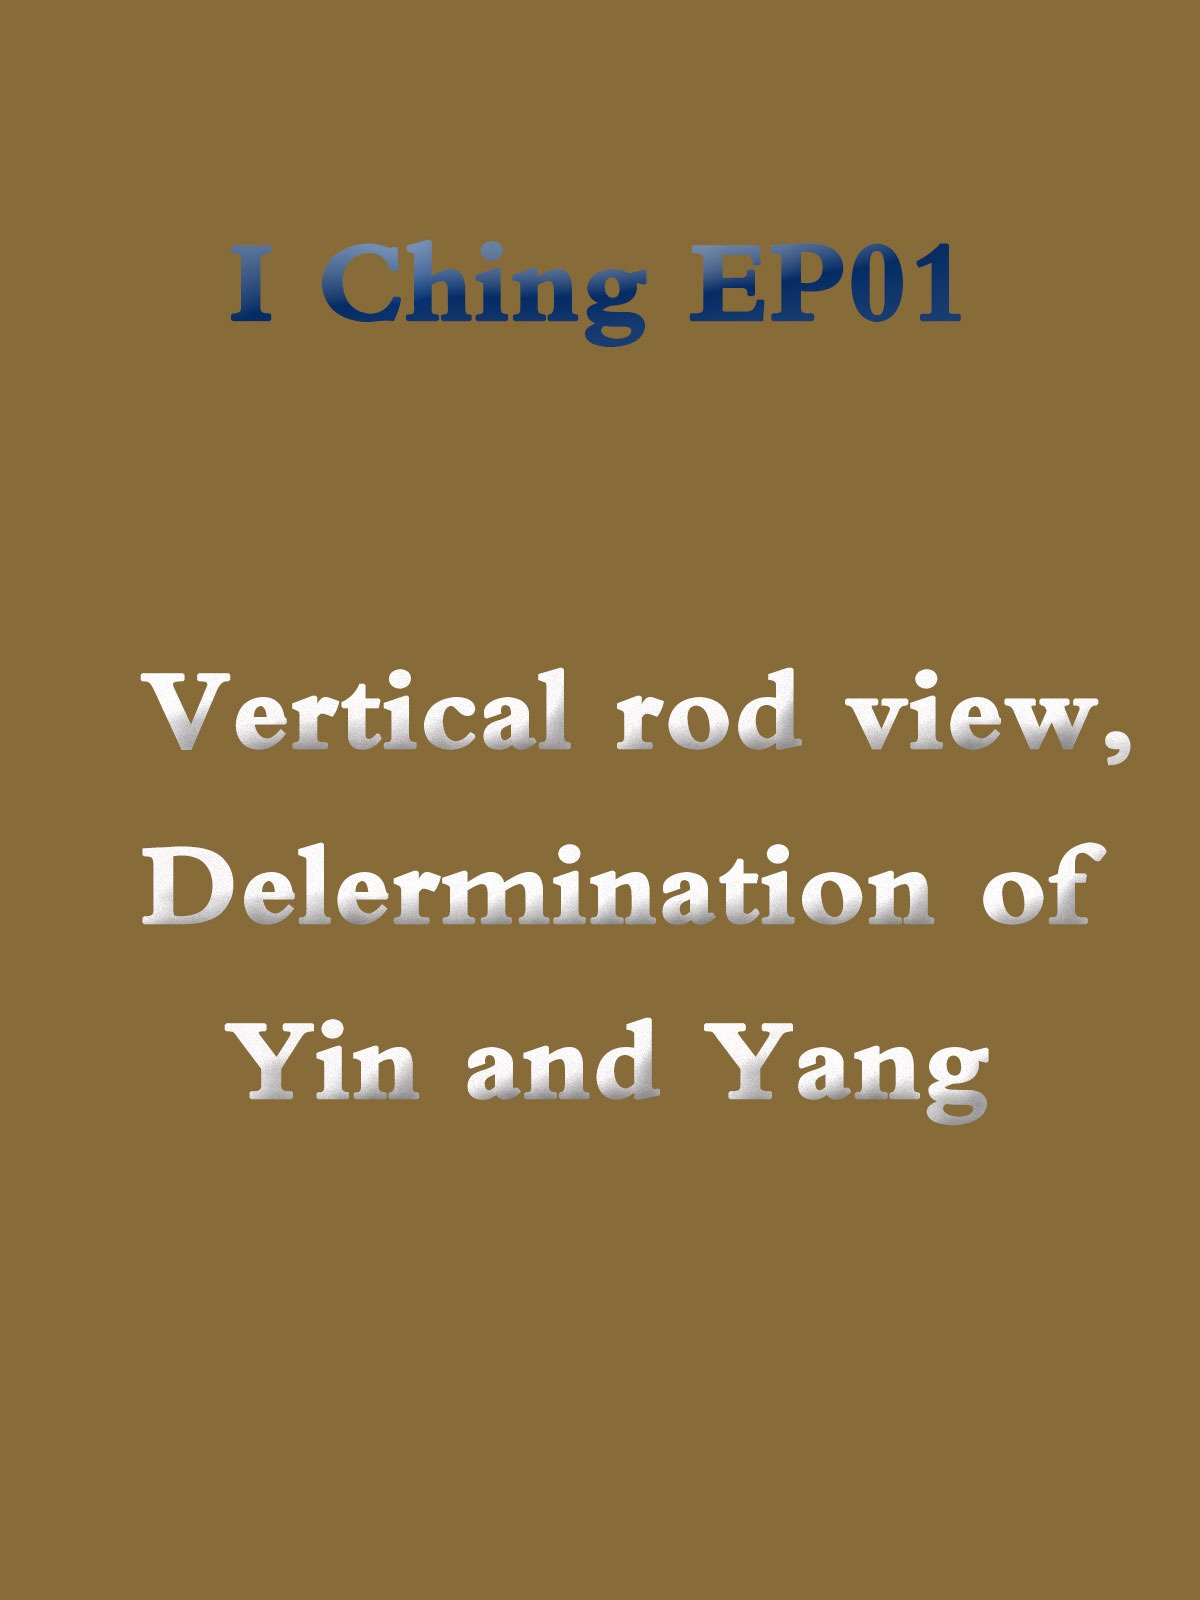 I Ching EP01 Vertical rod view, Delermination of Yin and Yang